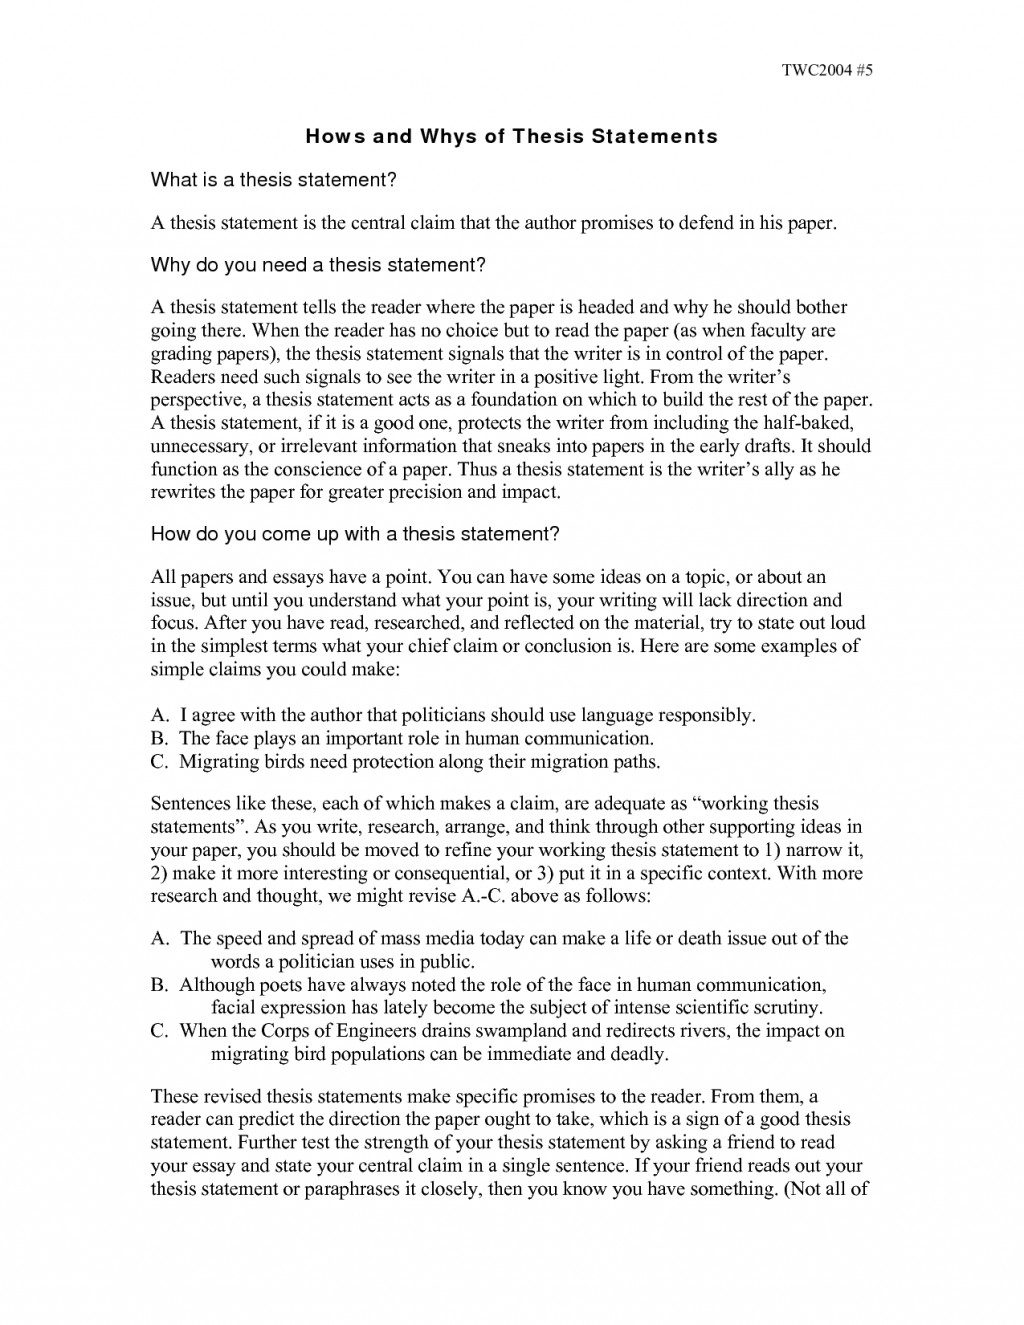 003 Research Paper How To Write Thesis Statement Examples For Papers Unique A History Scientific Large